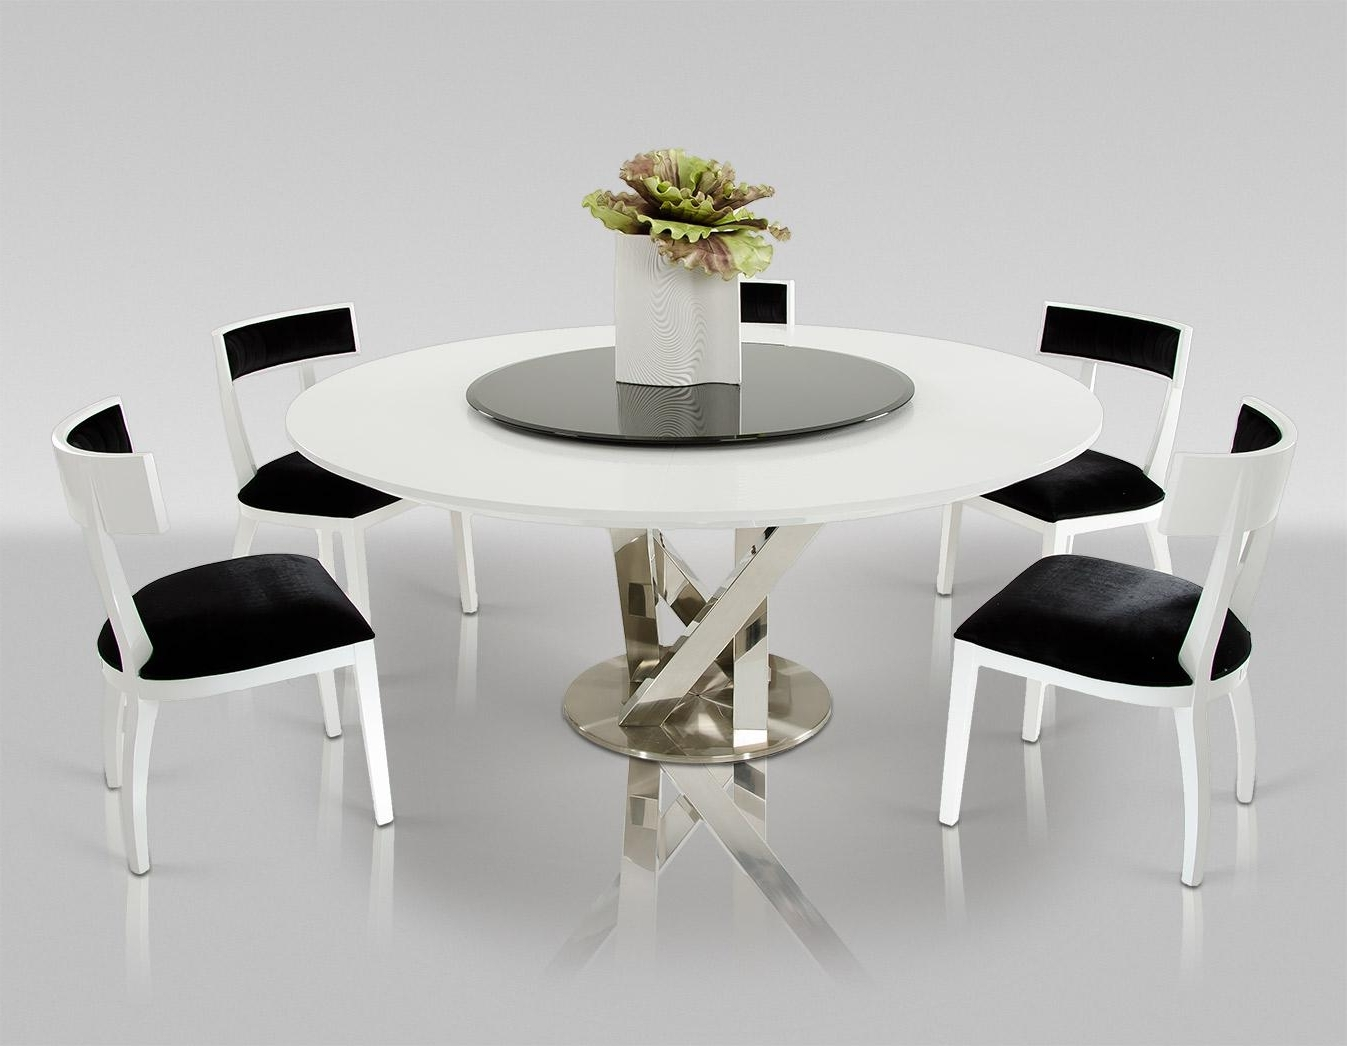 2017 Dining Tables: Amusing Large Round Modern Dining Table Round Wood With Regard To Large White Round Dining Tables (View 8 of 25)